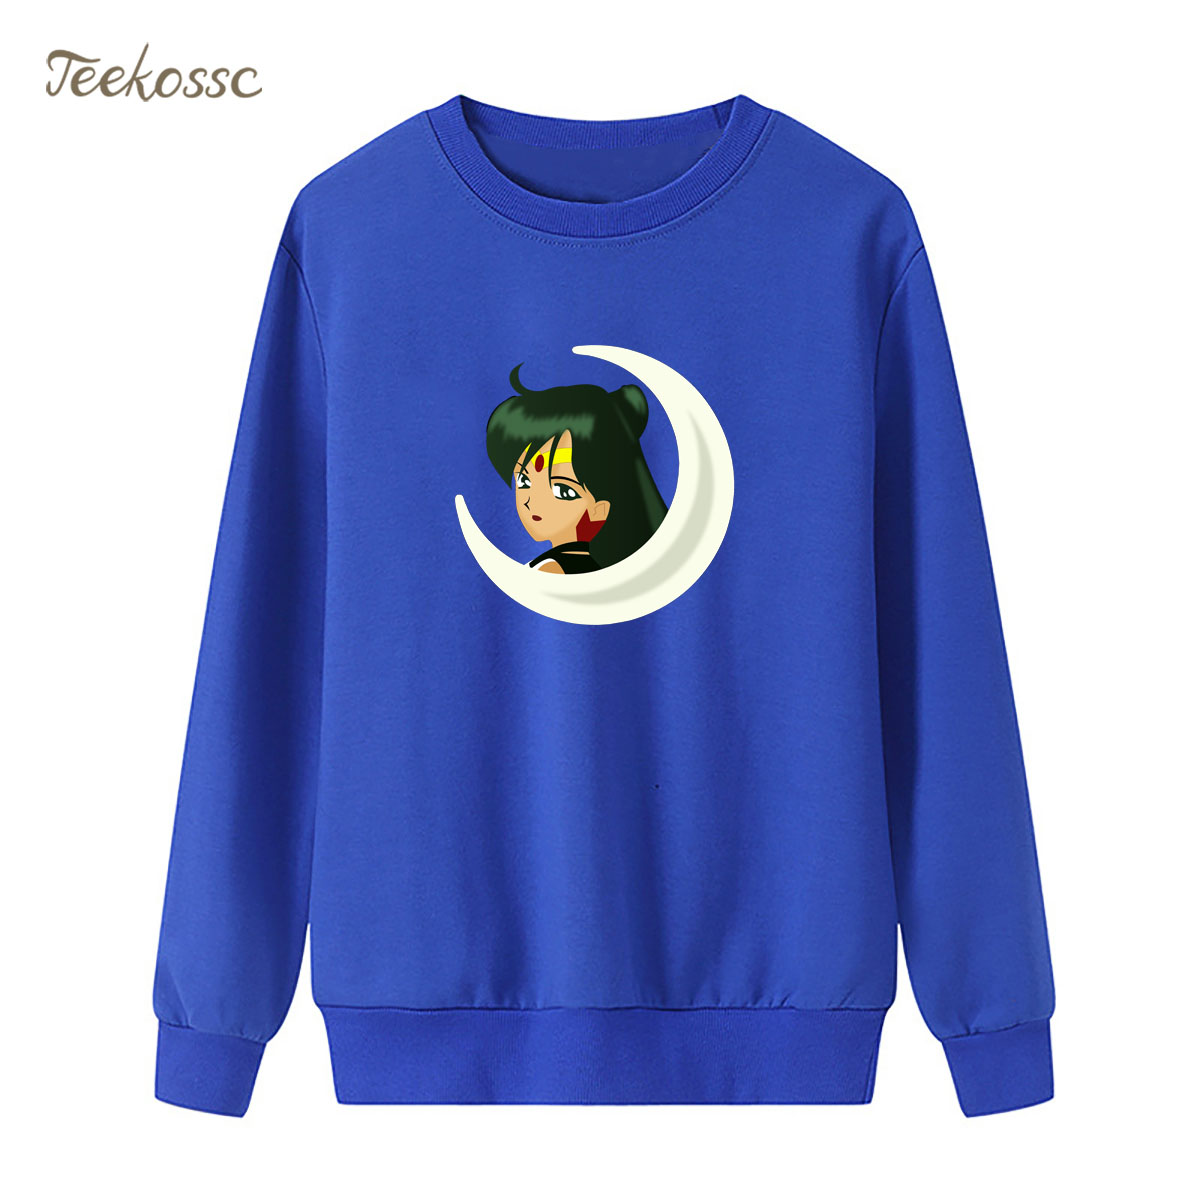 Cartoon Sailor Moon Sweatshirt Print Meiou Setsuna Hoodie 2018 Winter Autumn Women Lasdies Pullover Loose Fleece Brand Clothing